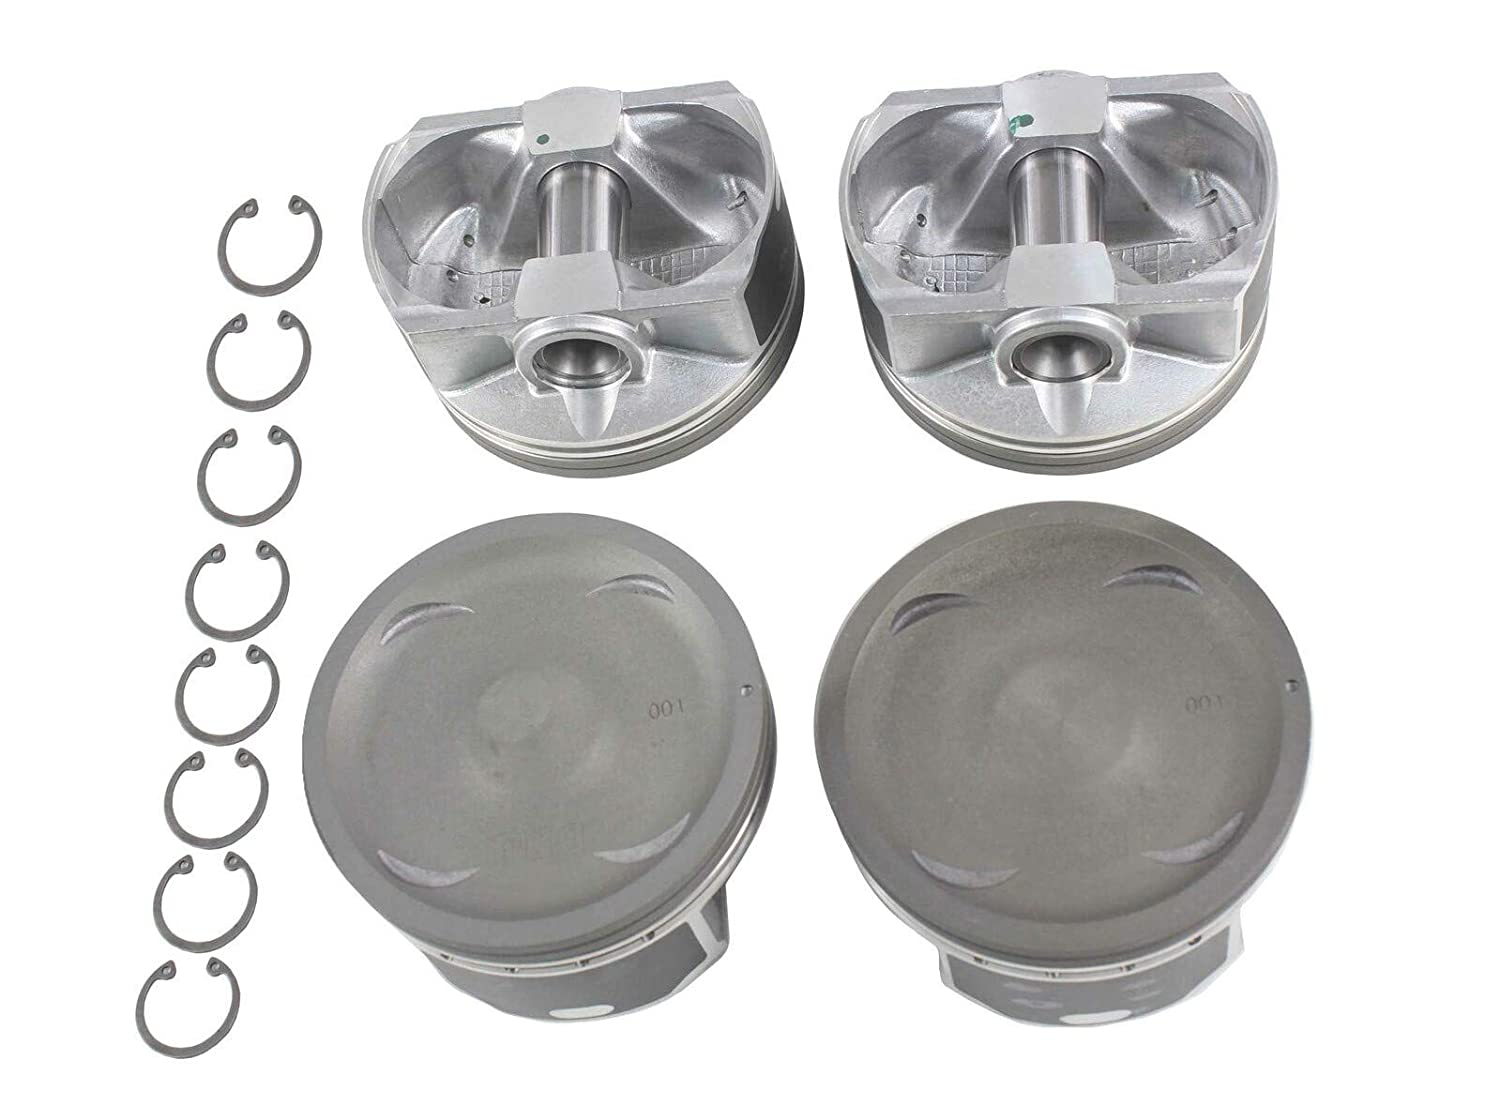 1 Set of P720A.20 Oversize 06-1 Piston with Compatible Complete Limited price Cheap mail order shopping sale